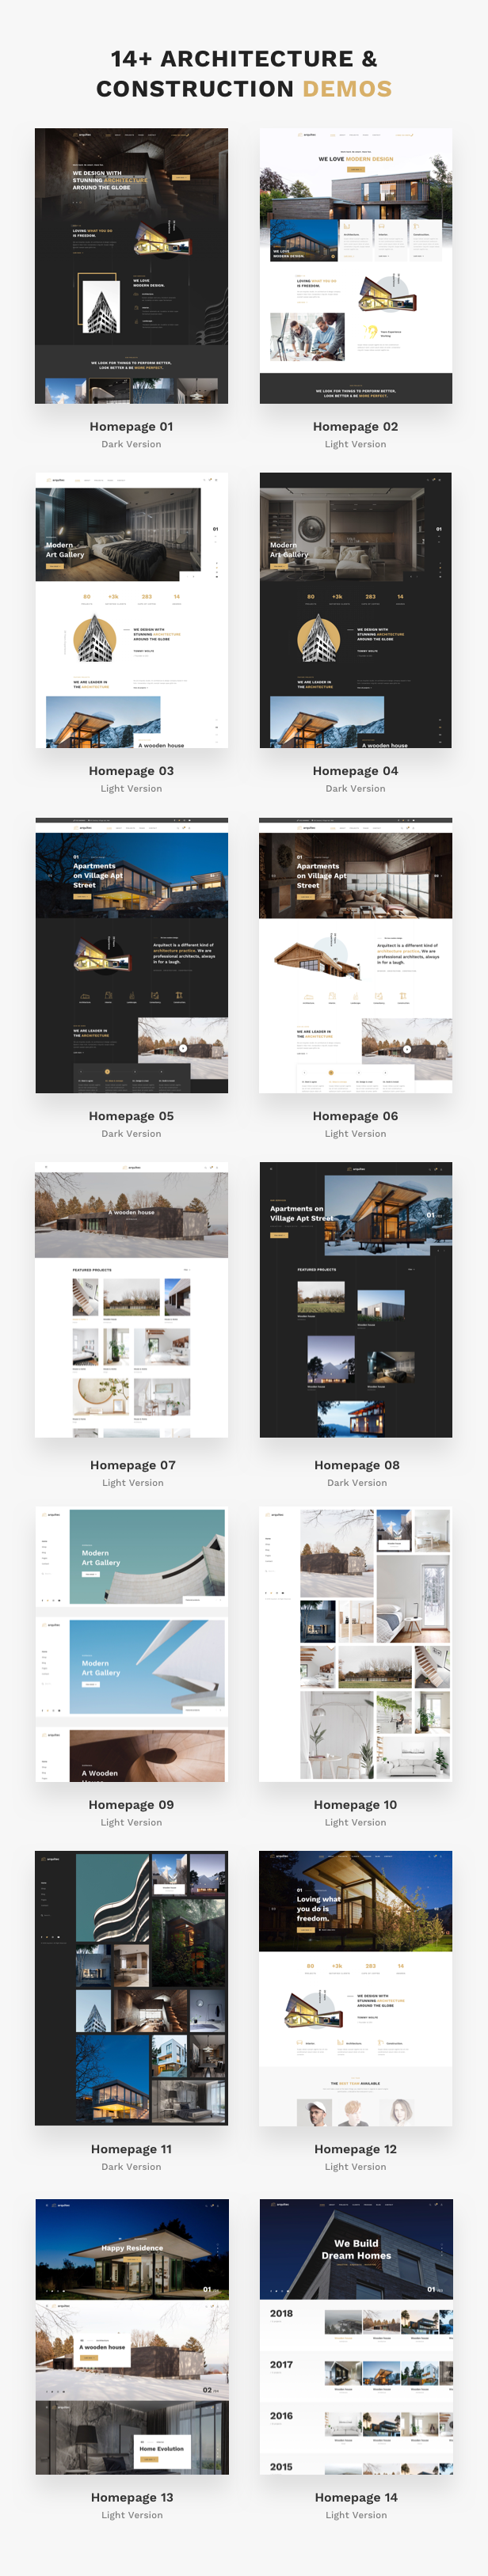 Arquitec - Architecture and Construction WordPress Theme - 5